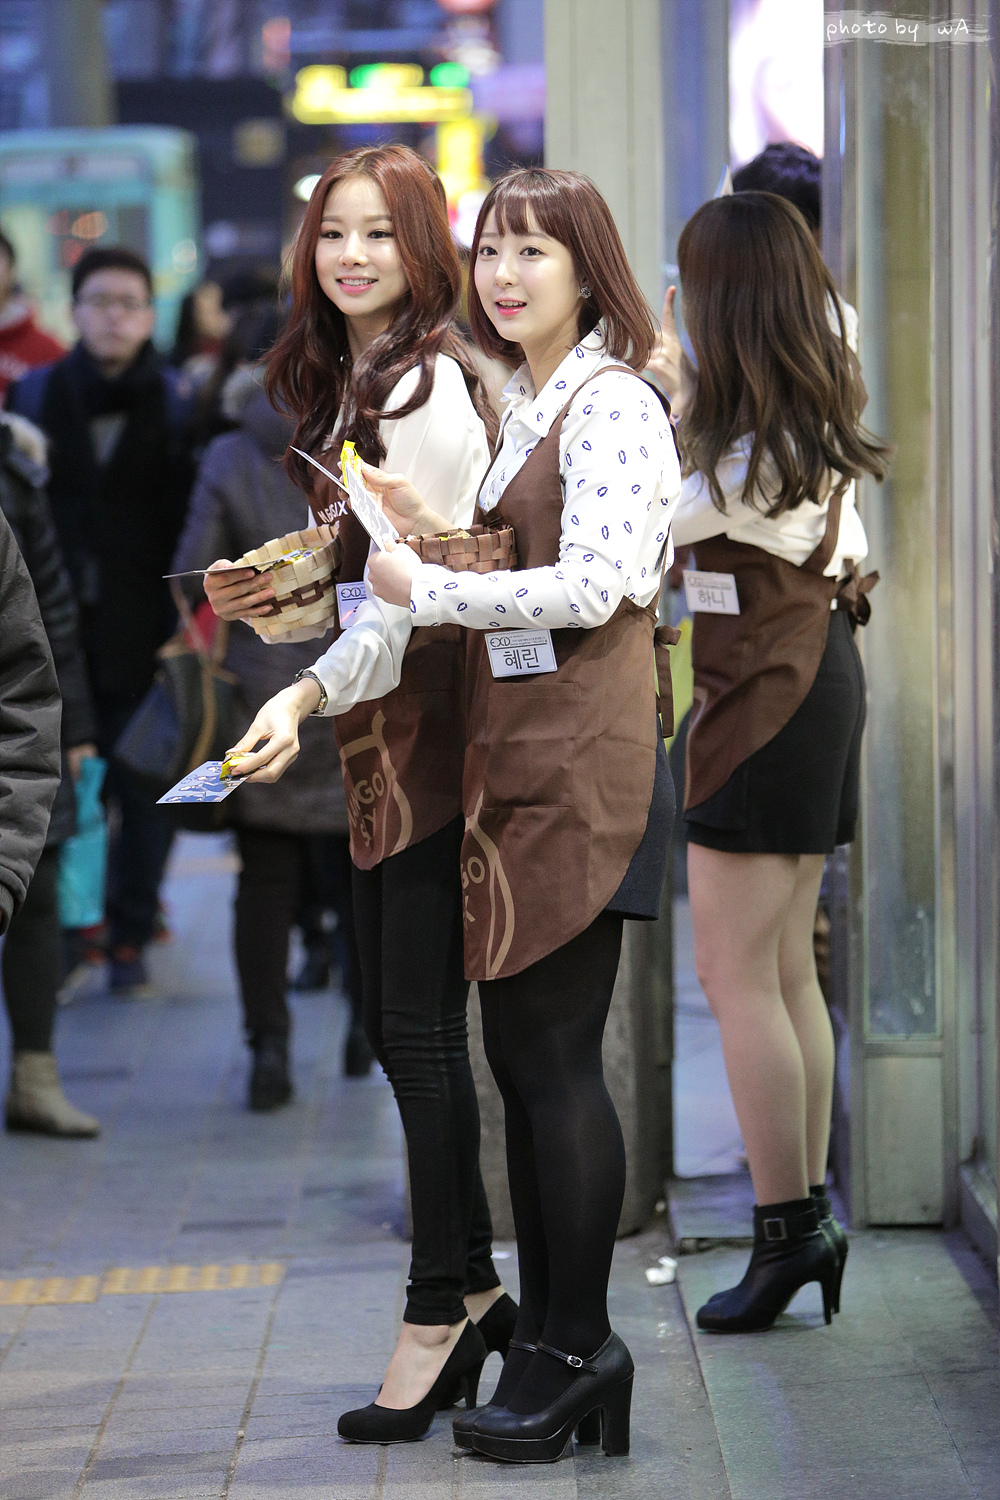 """[FANTAKEN][HQ] 2014.02.14 EXID Romantic Valentine's Day """"Better Together"""" Event withMANGOSIX"""